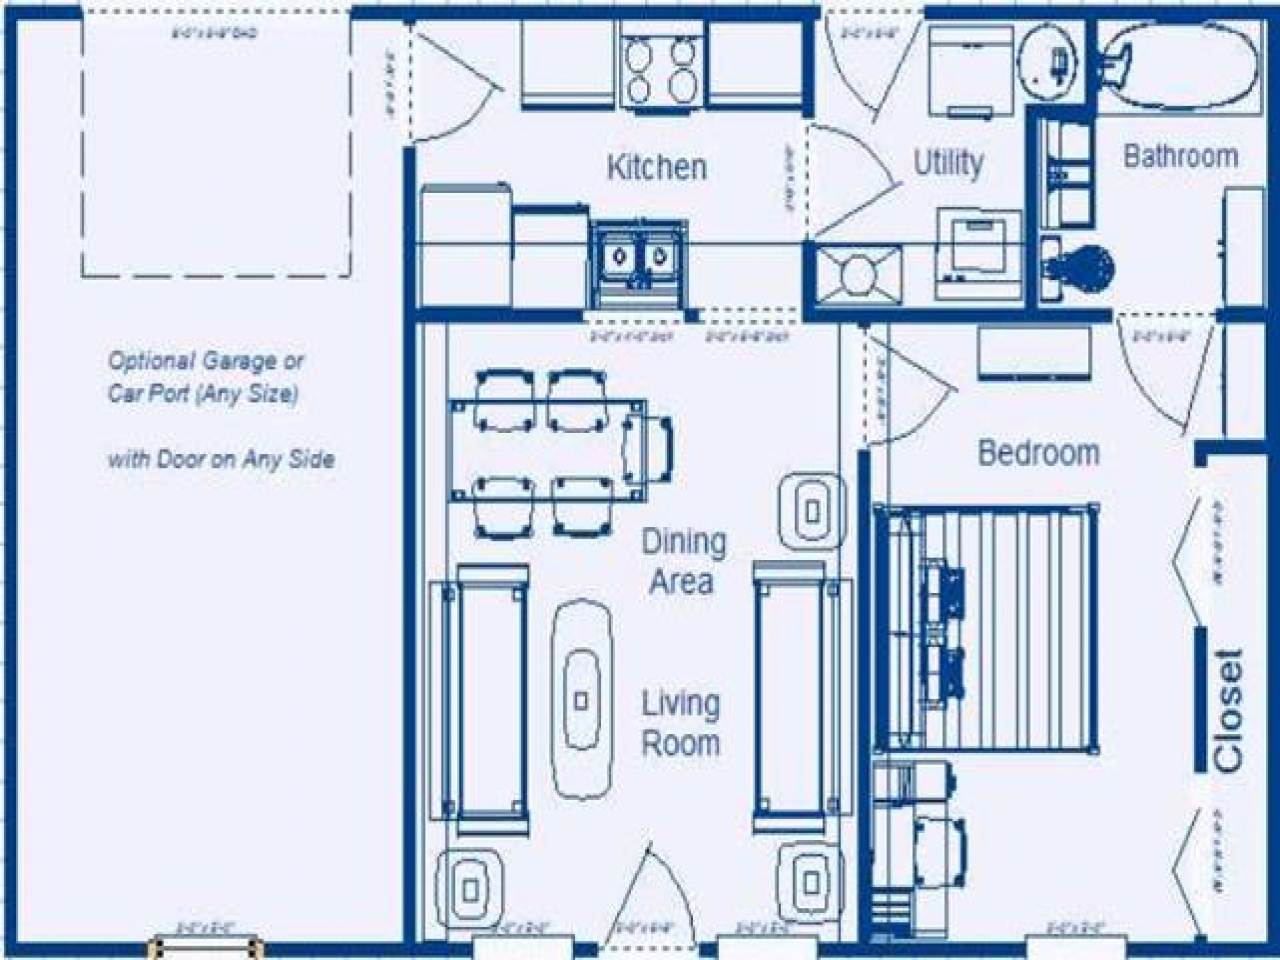 Low income house plans low energy home plans simple residential house plans - Low house plans ...